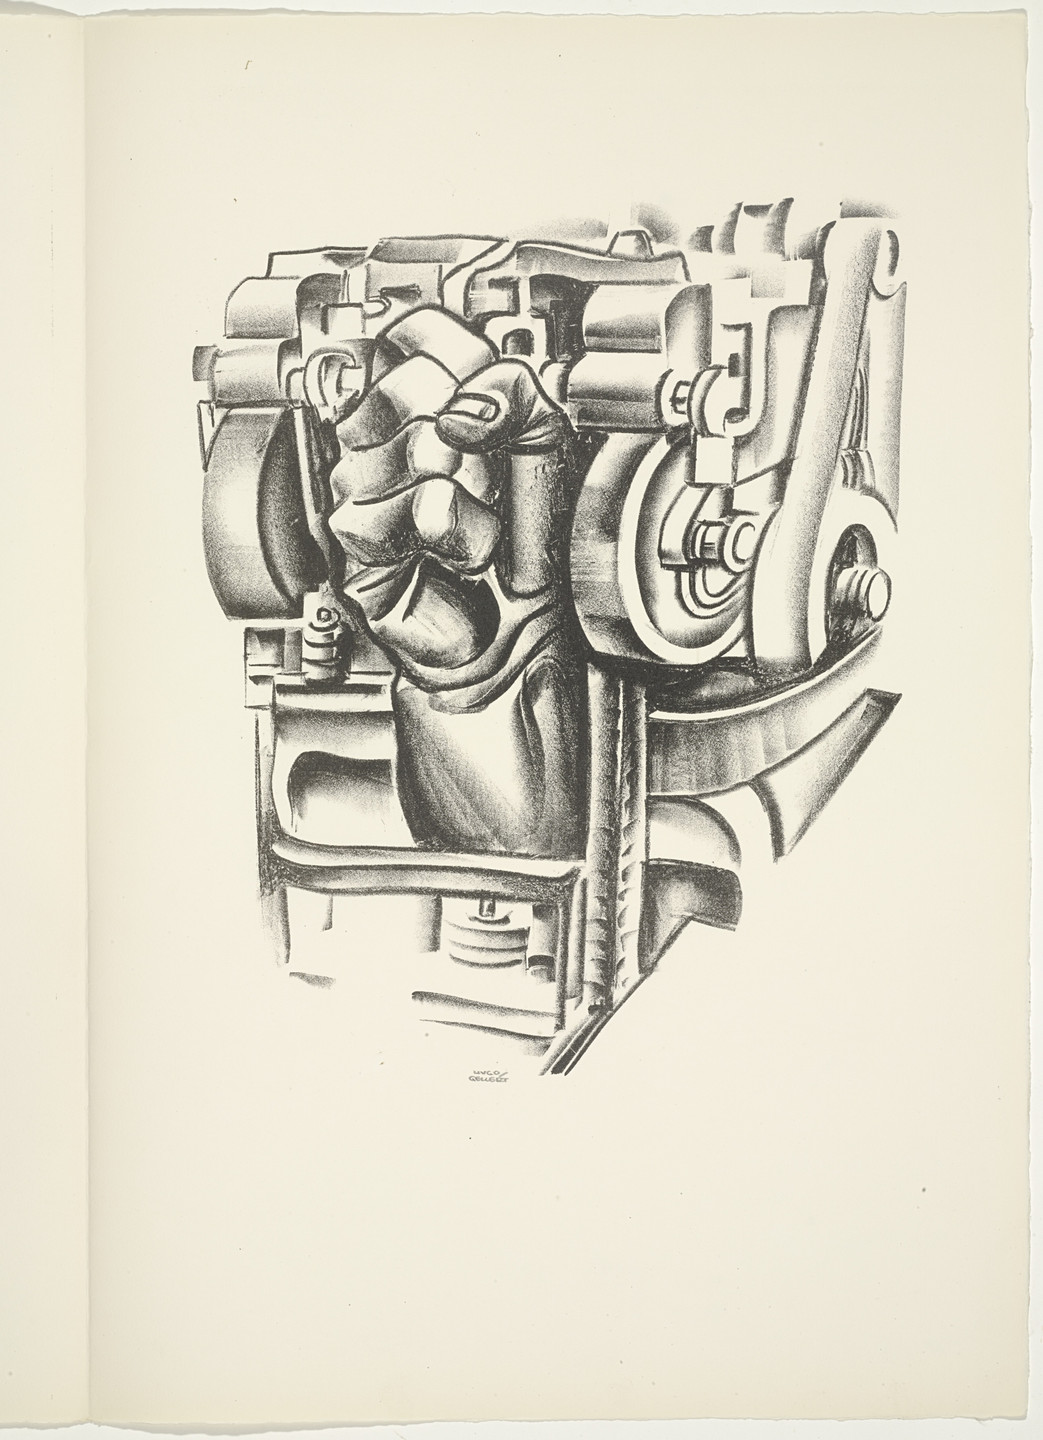 Hugo Gellert. Plate (folio 94) from 'Capital' in Pictures. 1933